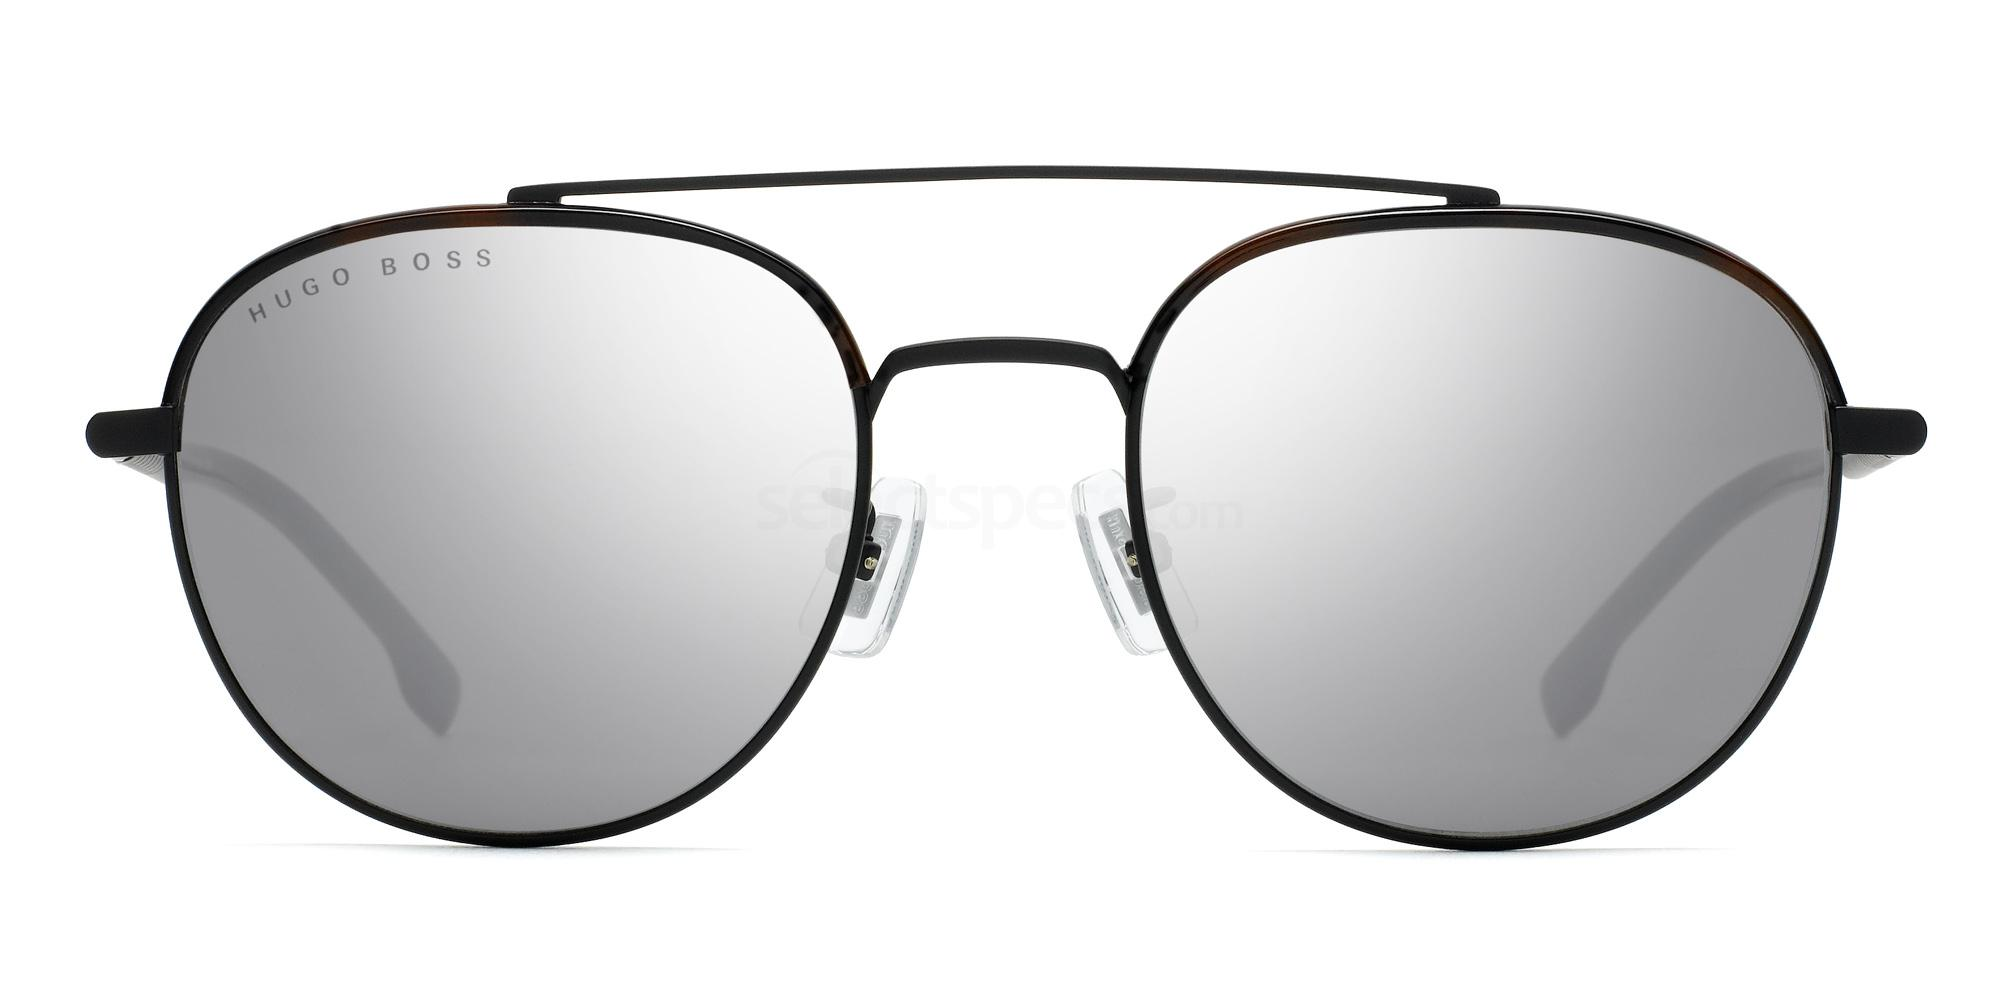 003 (T4) BOSS 1069/F/S Sunglasses, BOSS Hugo Boss